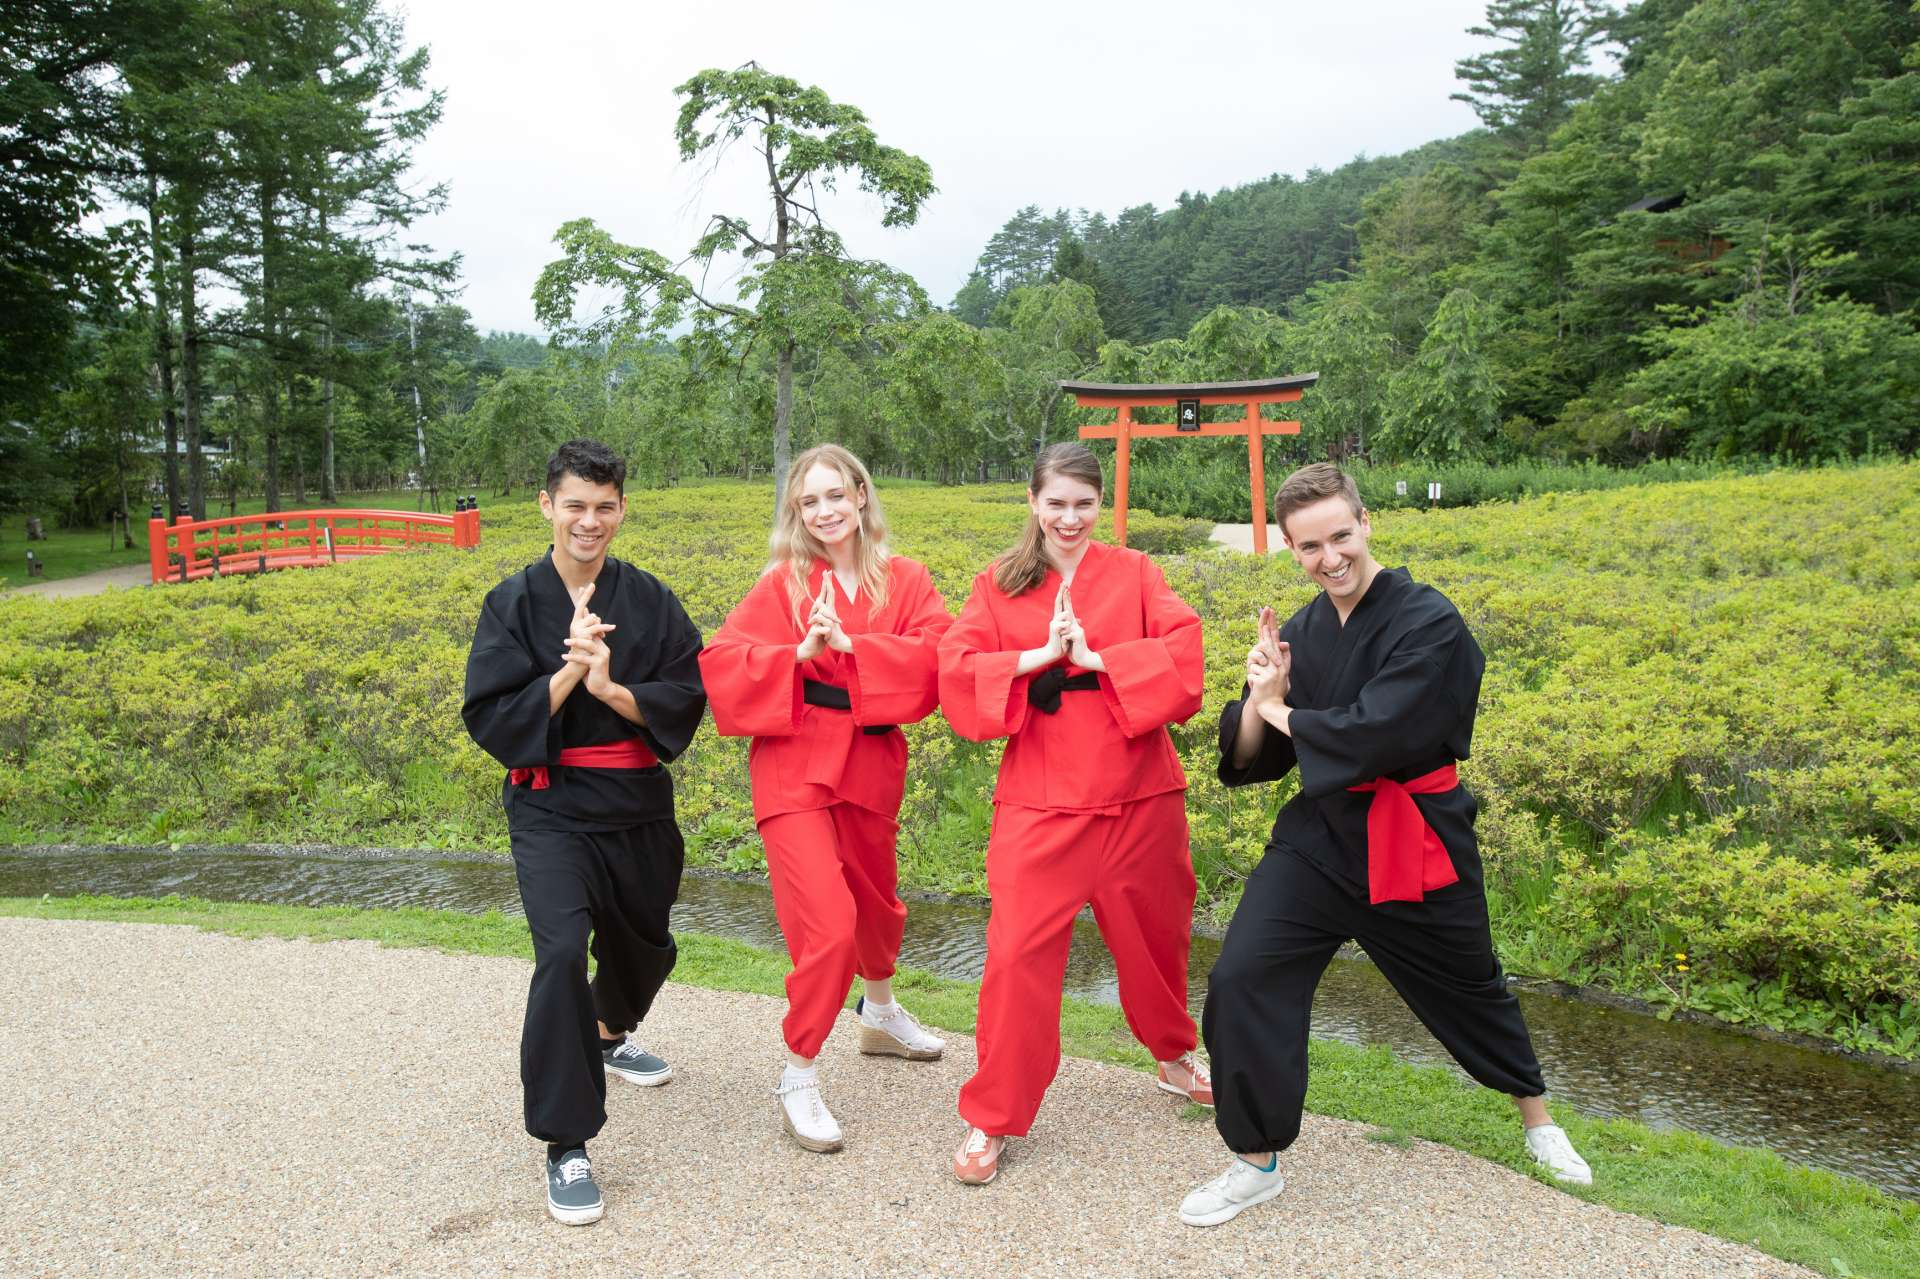 Change into rented ninja outfits to truly transform!